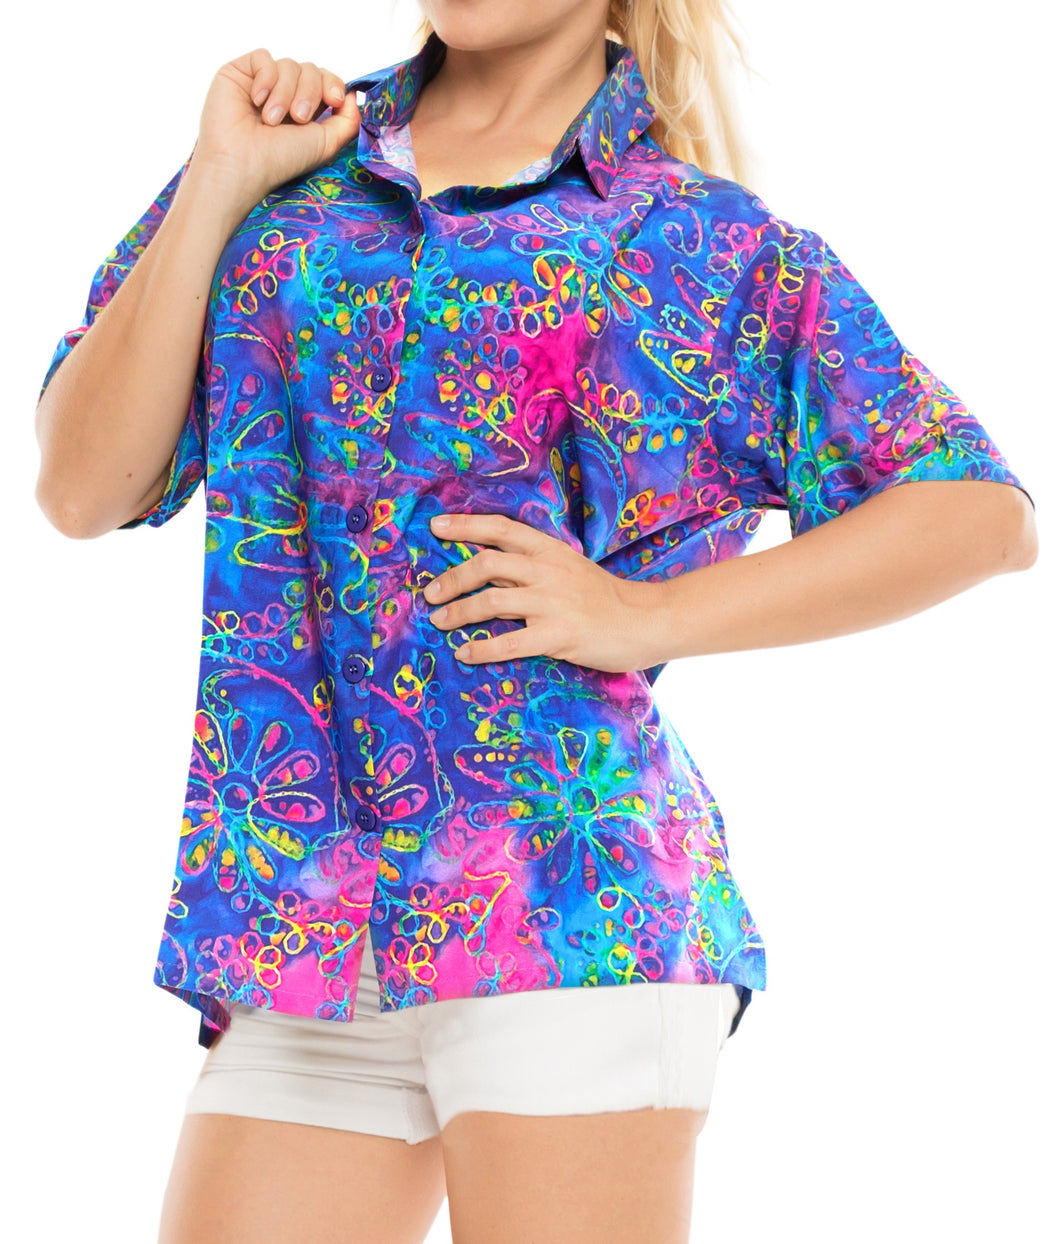 la-leela-womens-beach-casual-hawaiian-blouse-short-sleeve-button-down-shirt-multicolor-drt-1